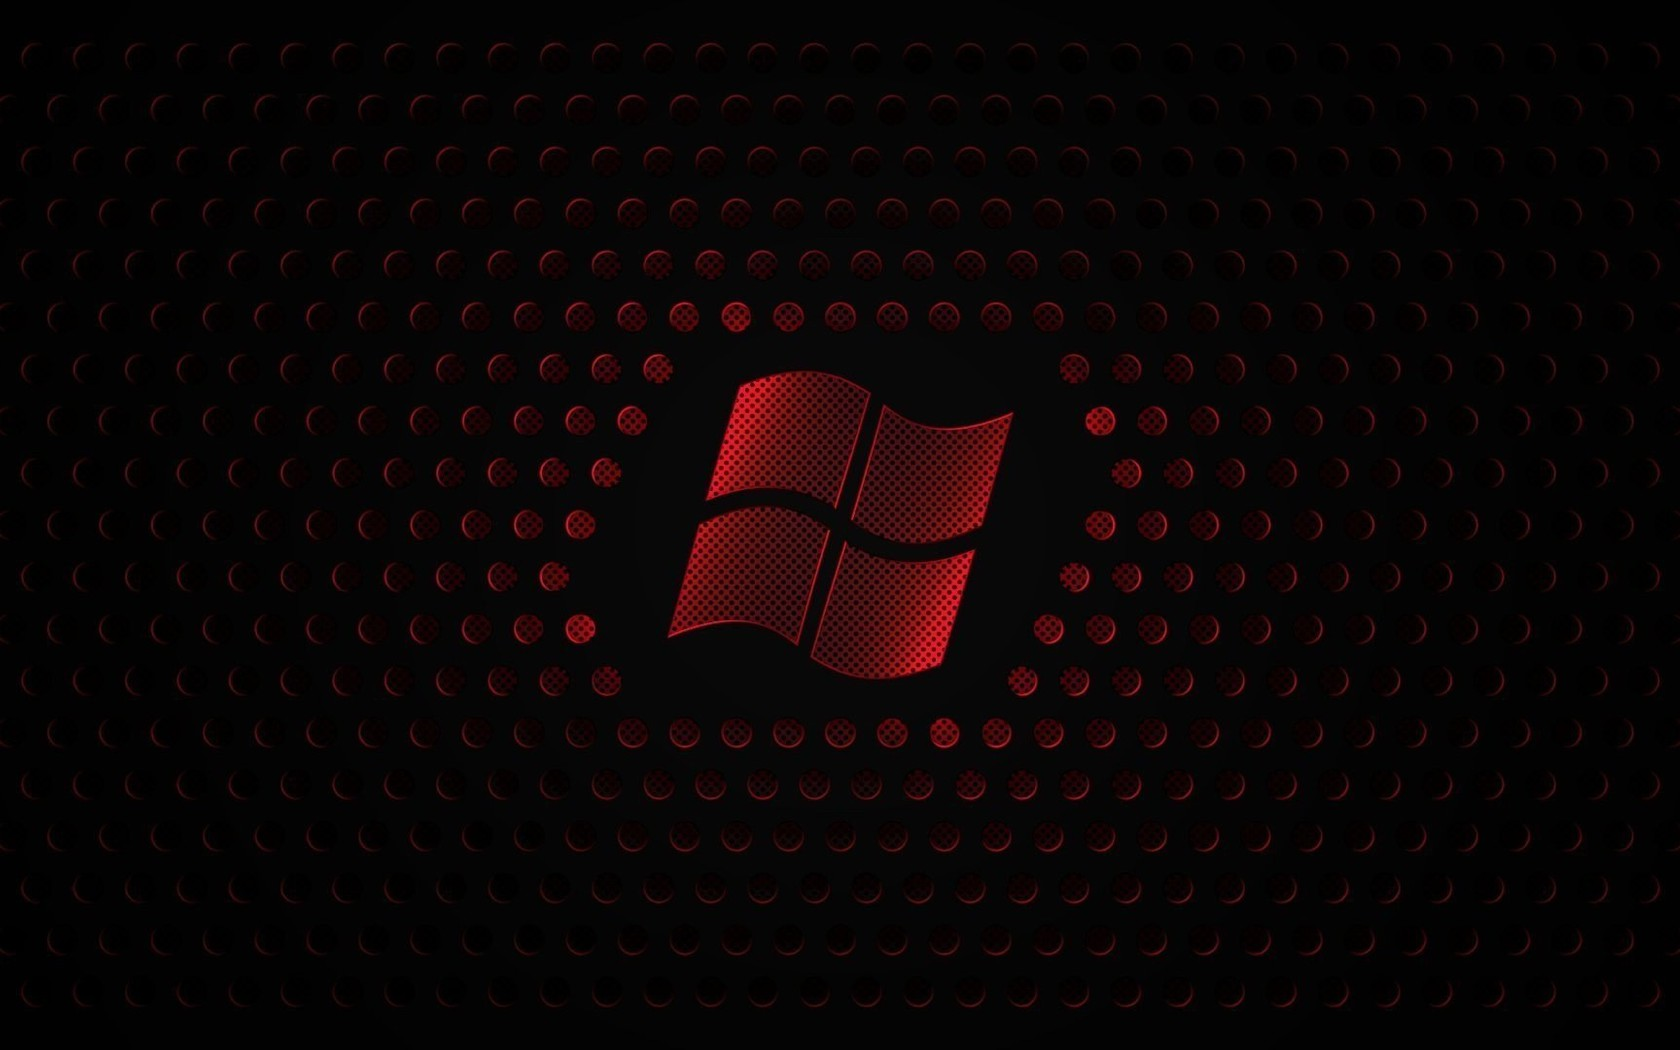 red microsoft windows 7 logo 8 wallpaper allwallpaperin